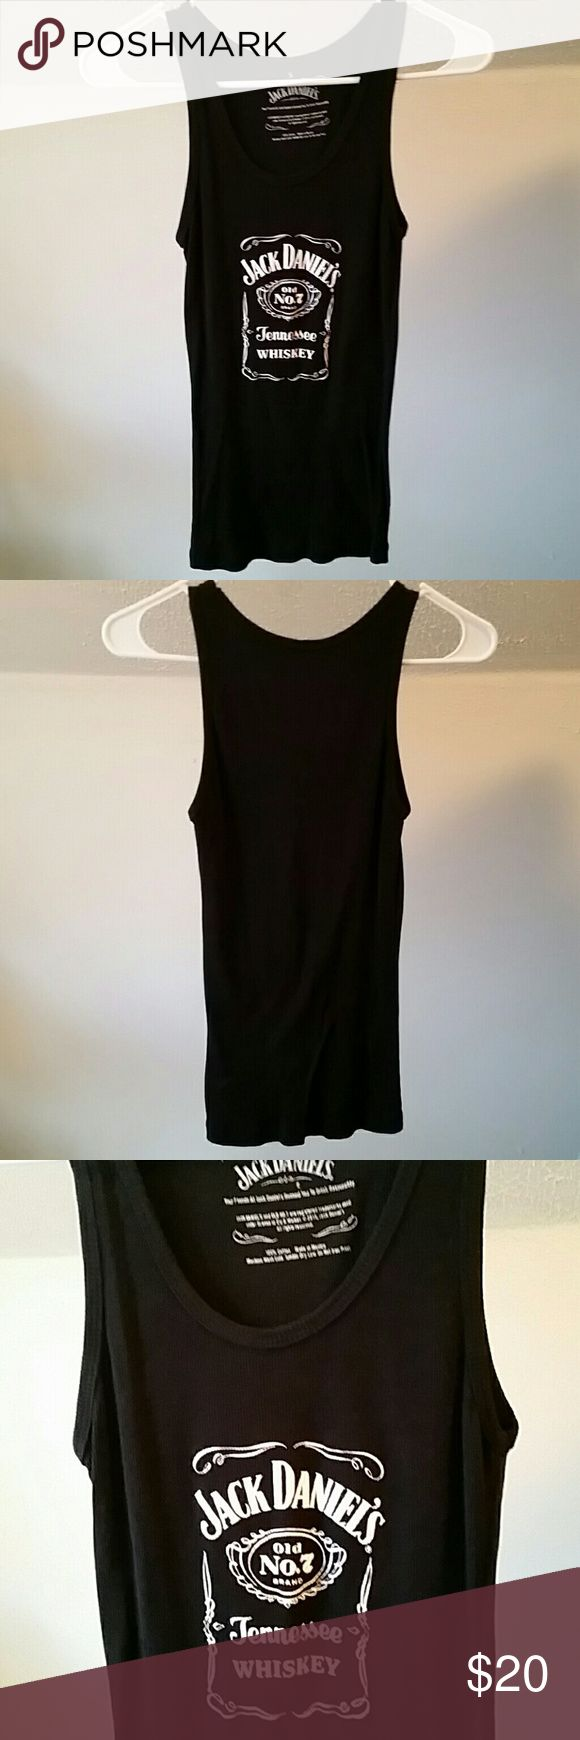 Excellent condition! Jack Daniels tank top. Bought in Lynchburg, Tennessee... home of Jack Daniels whiskey! This cute tank top was worn one time. There are no stains, holes, tears, or fading. Comes from a smoke-free home. Jack Daniels Tops Tank Tops